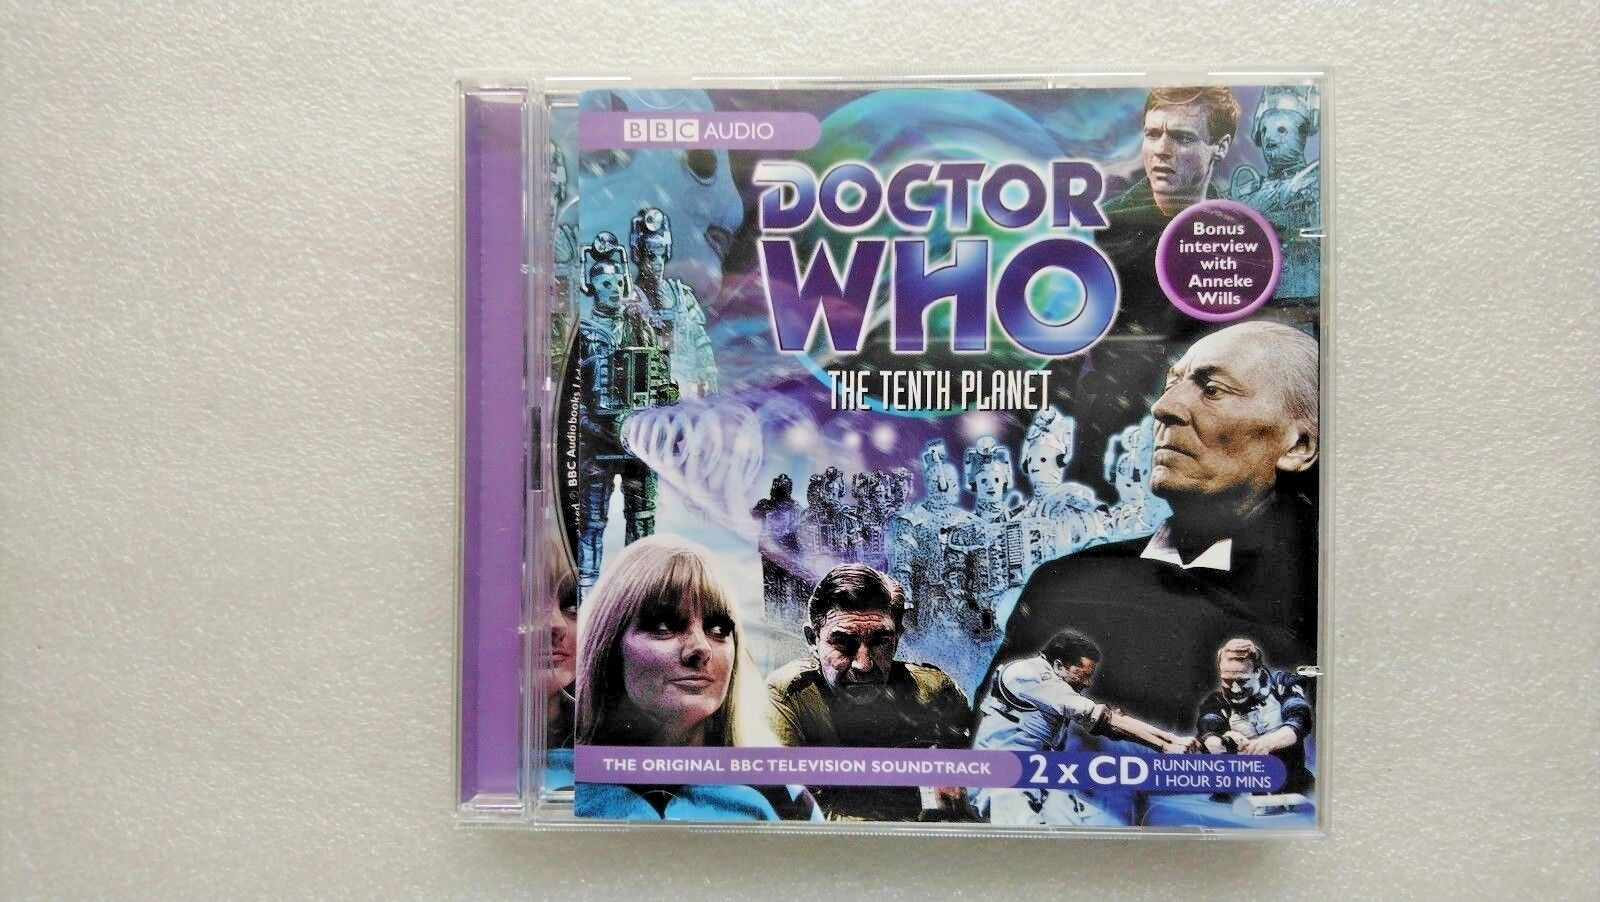 Doctor Who , the Tenth Planet by BBC Audio, (CD-Audio 2006) - William Hartnell